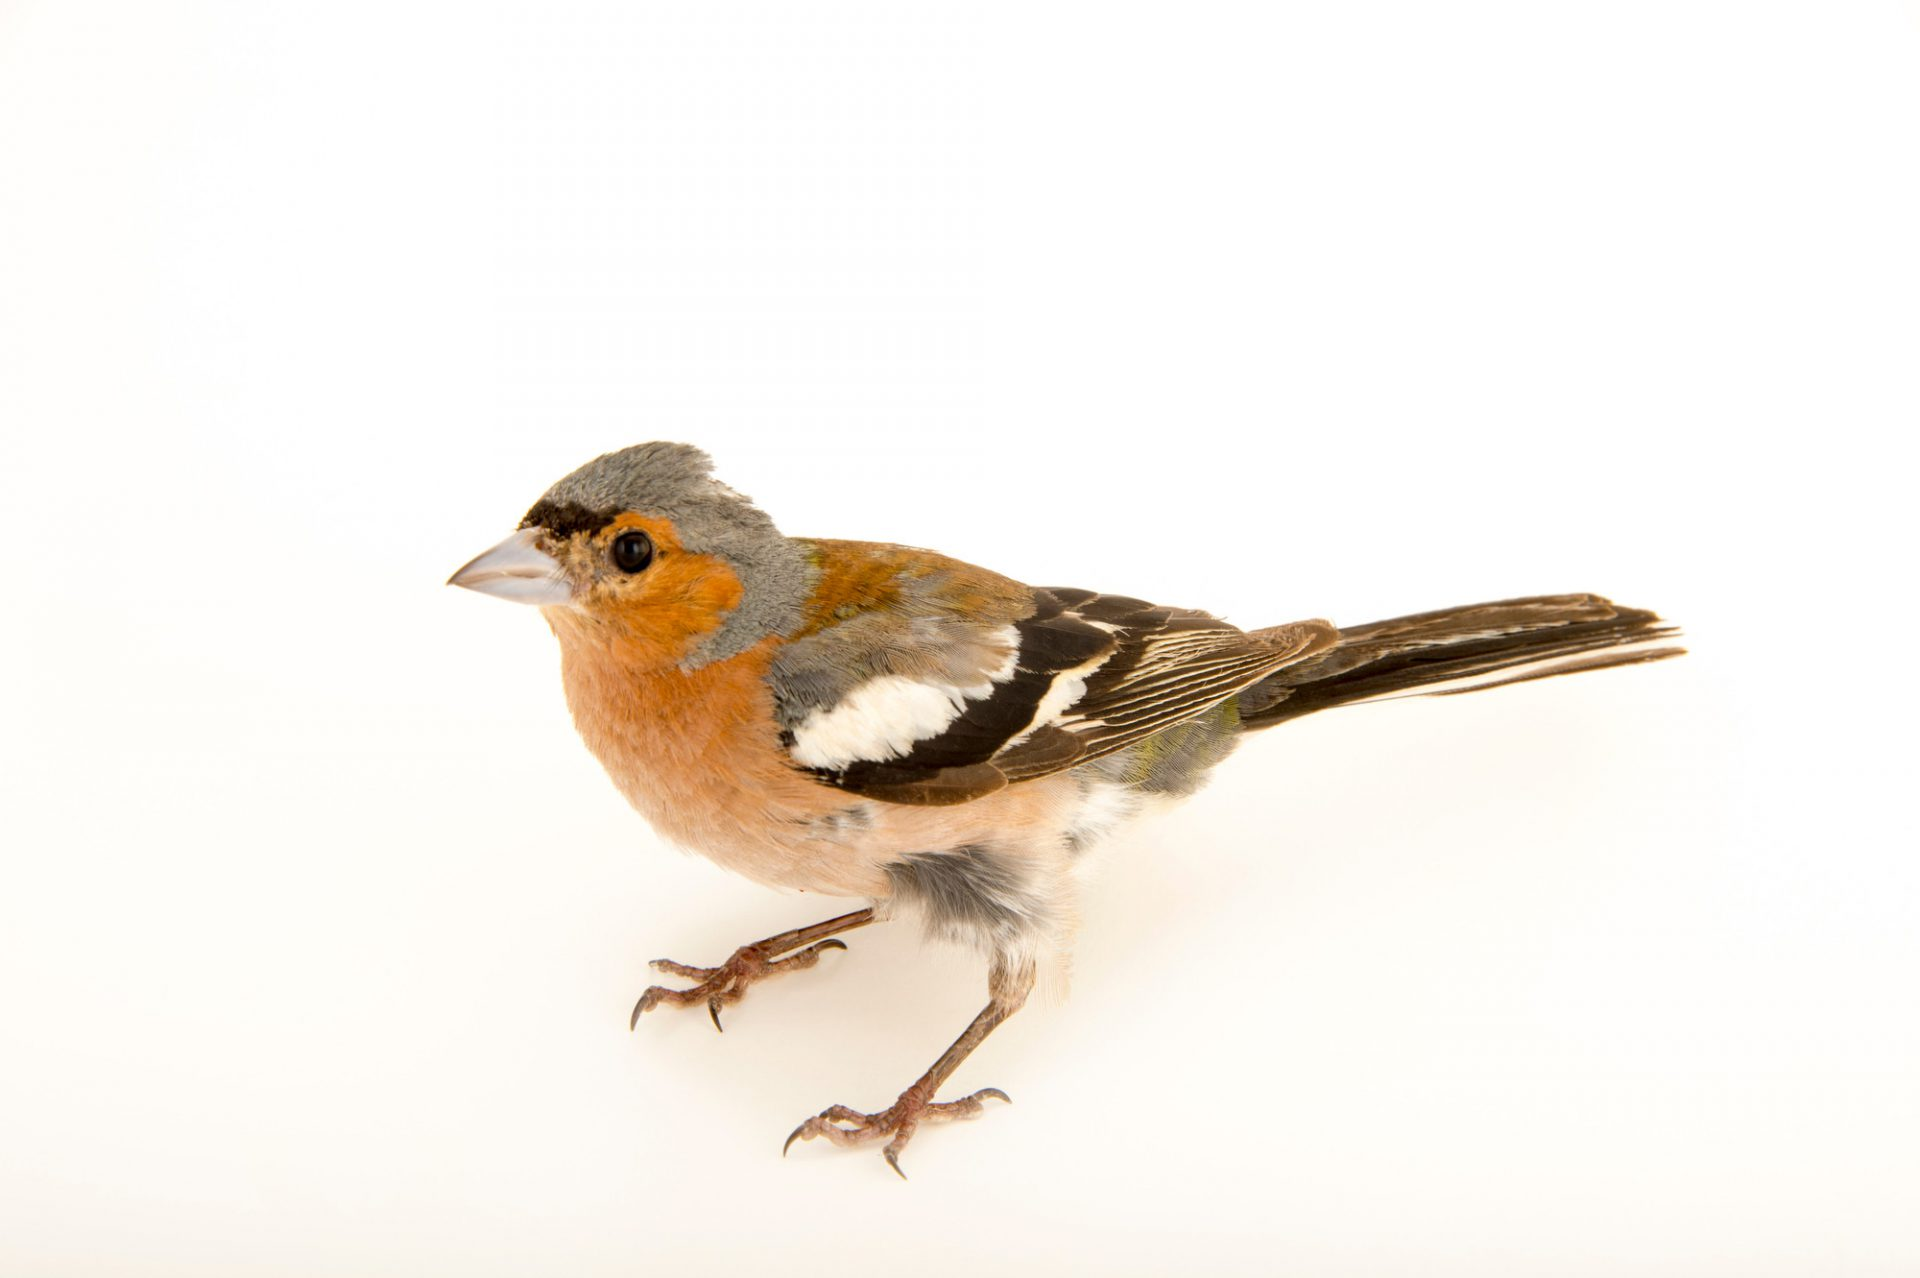 Photo: An adult male common chaffinch (Fringilla coelebs) at the Budapest Zoo.